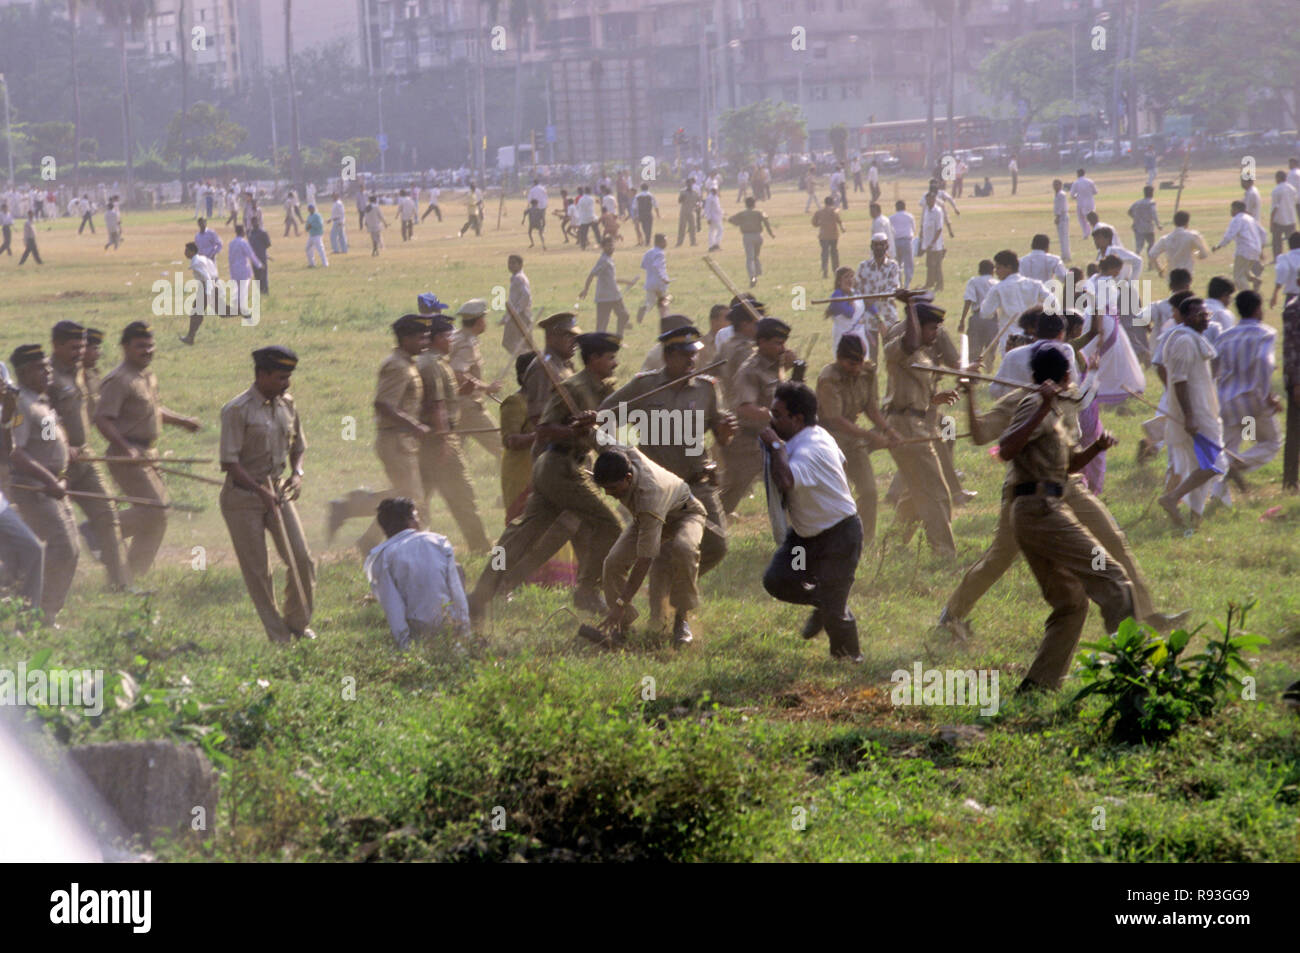 police controlling riot situation, india - Stock Image